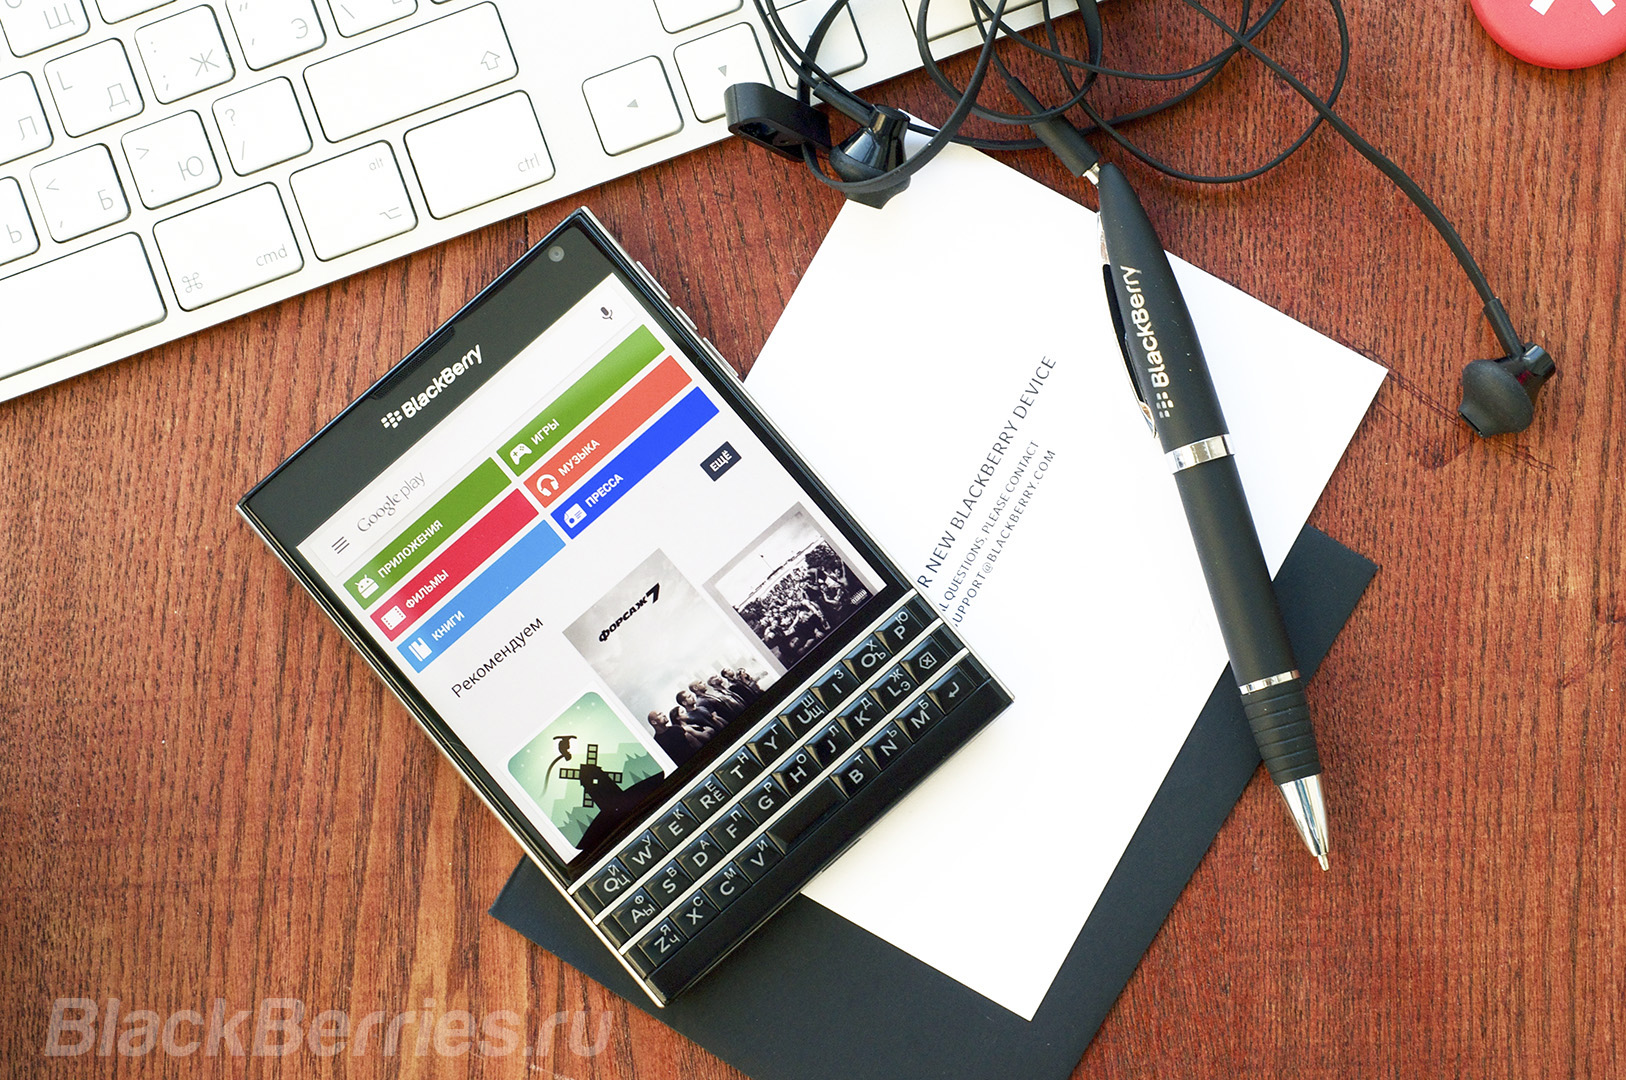 BlackBerry-Passport-Review-2016-33-1-1